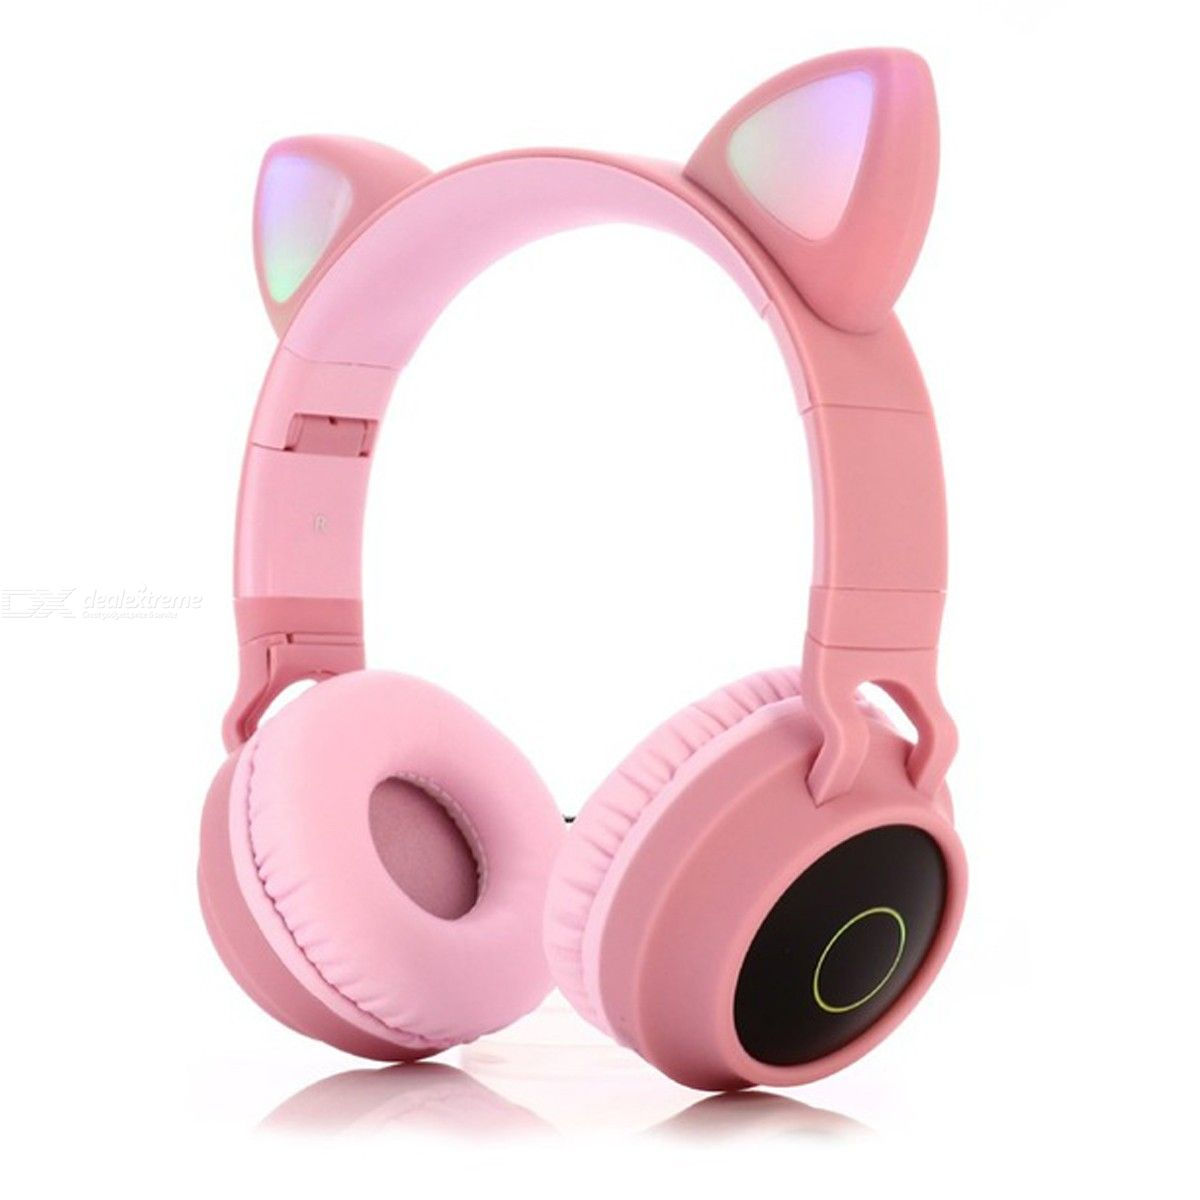 Bluetooth 5.0 Headphones Cat Ear LED Light Wireless Headphones HIFI Bass Stereo Headphones for Phones with Mic